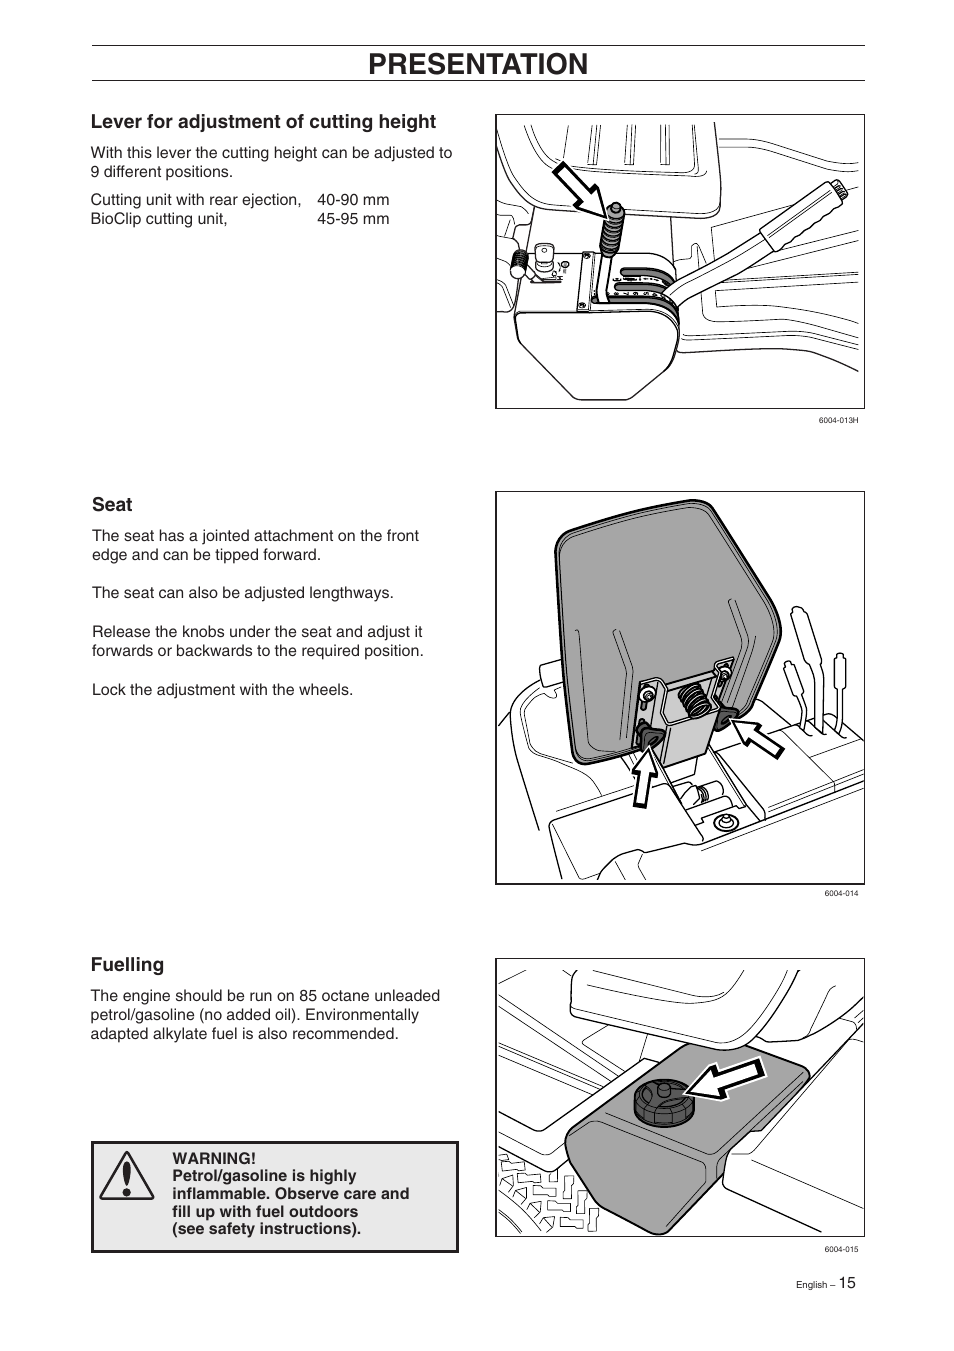 Presentation, Lever for adjustment of cutting height, Seat   Husqvarna Rider  11 User Manual   Page 17 / 52